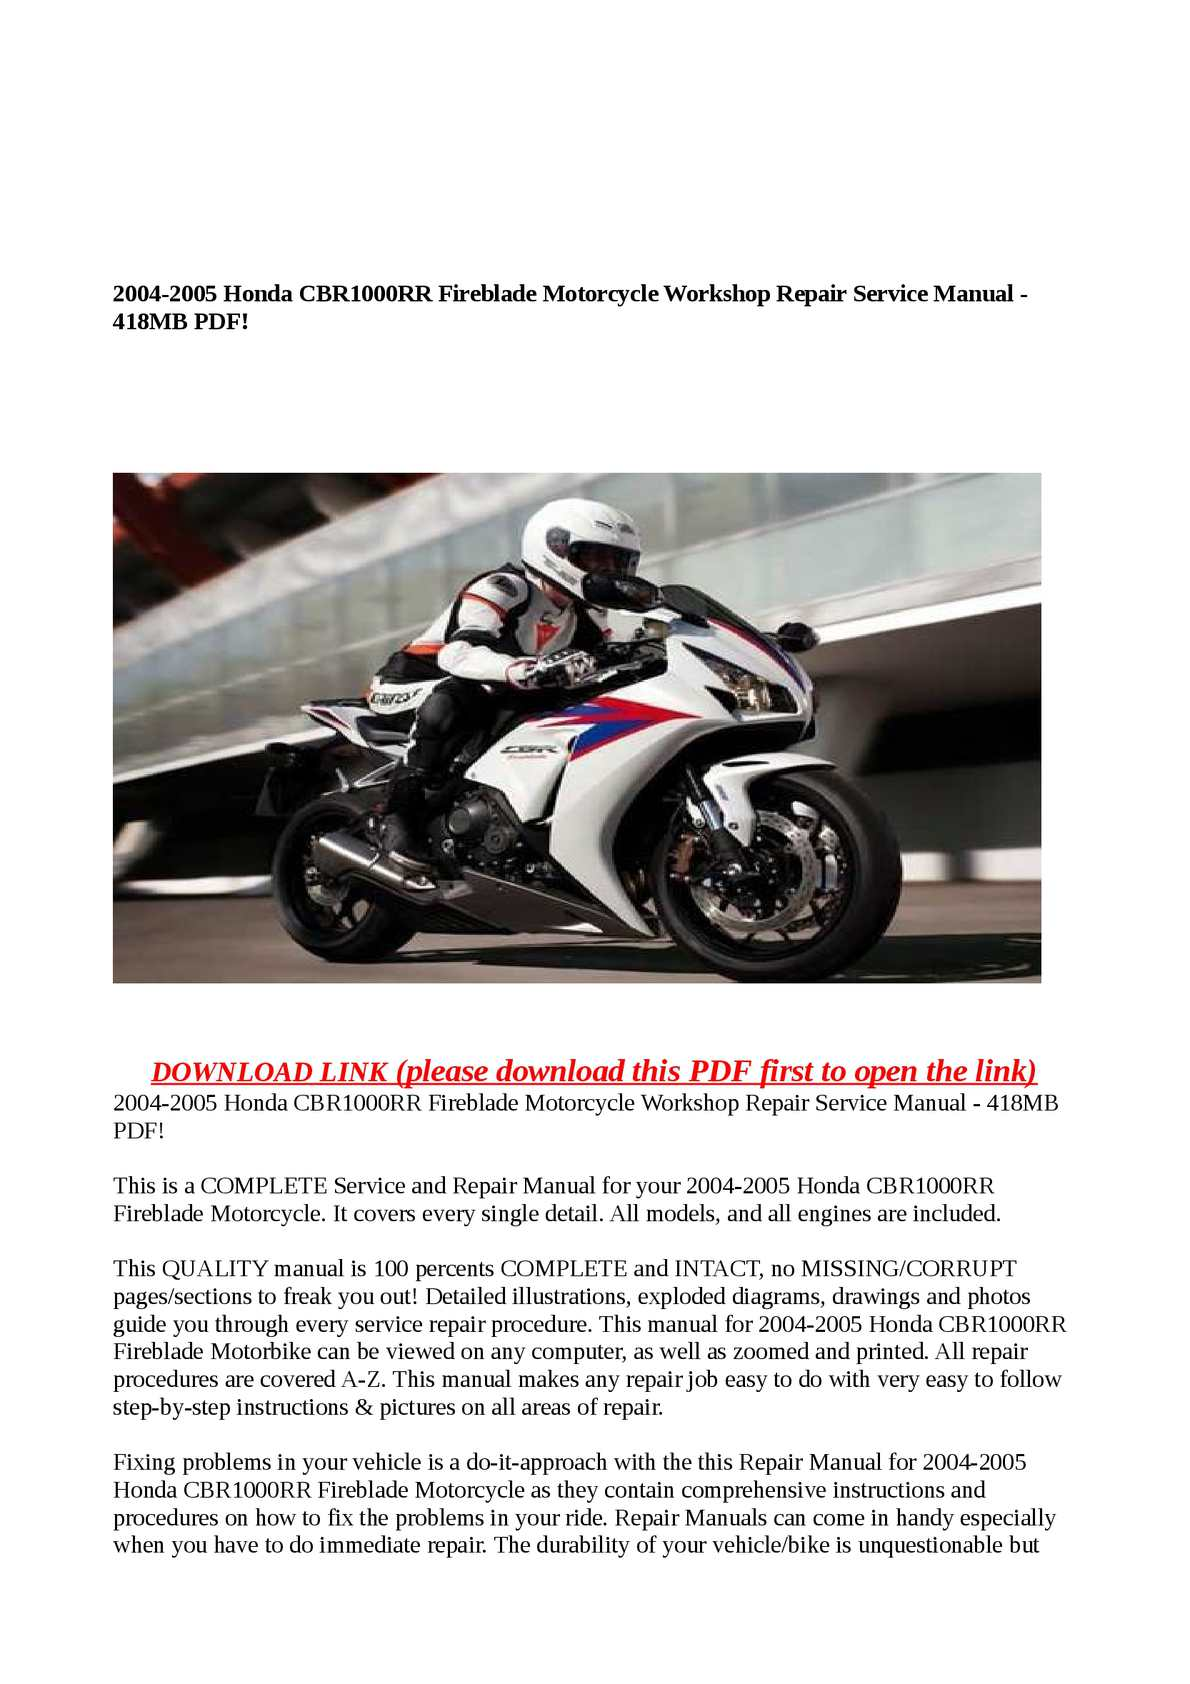 Motorcycle Manual Pdf